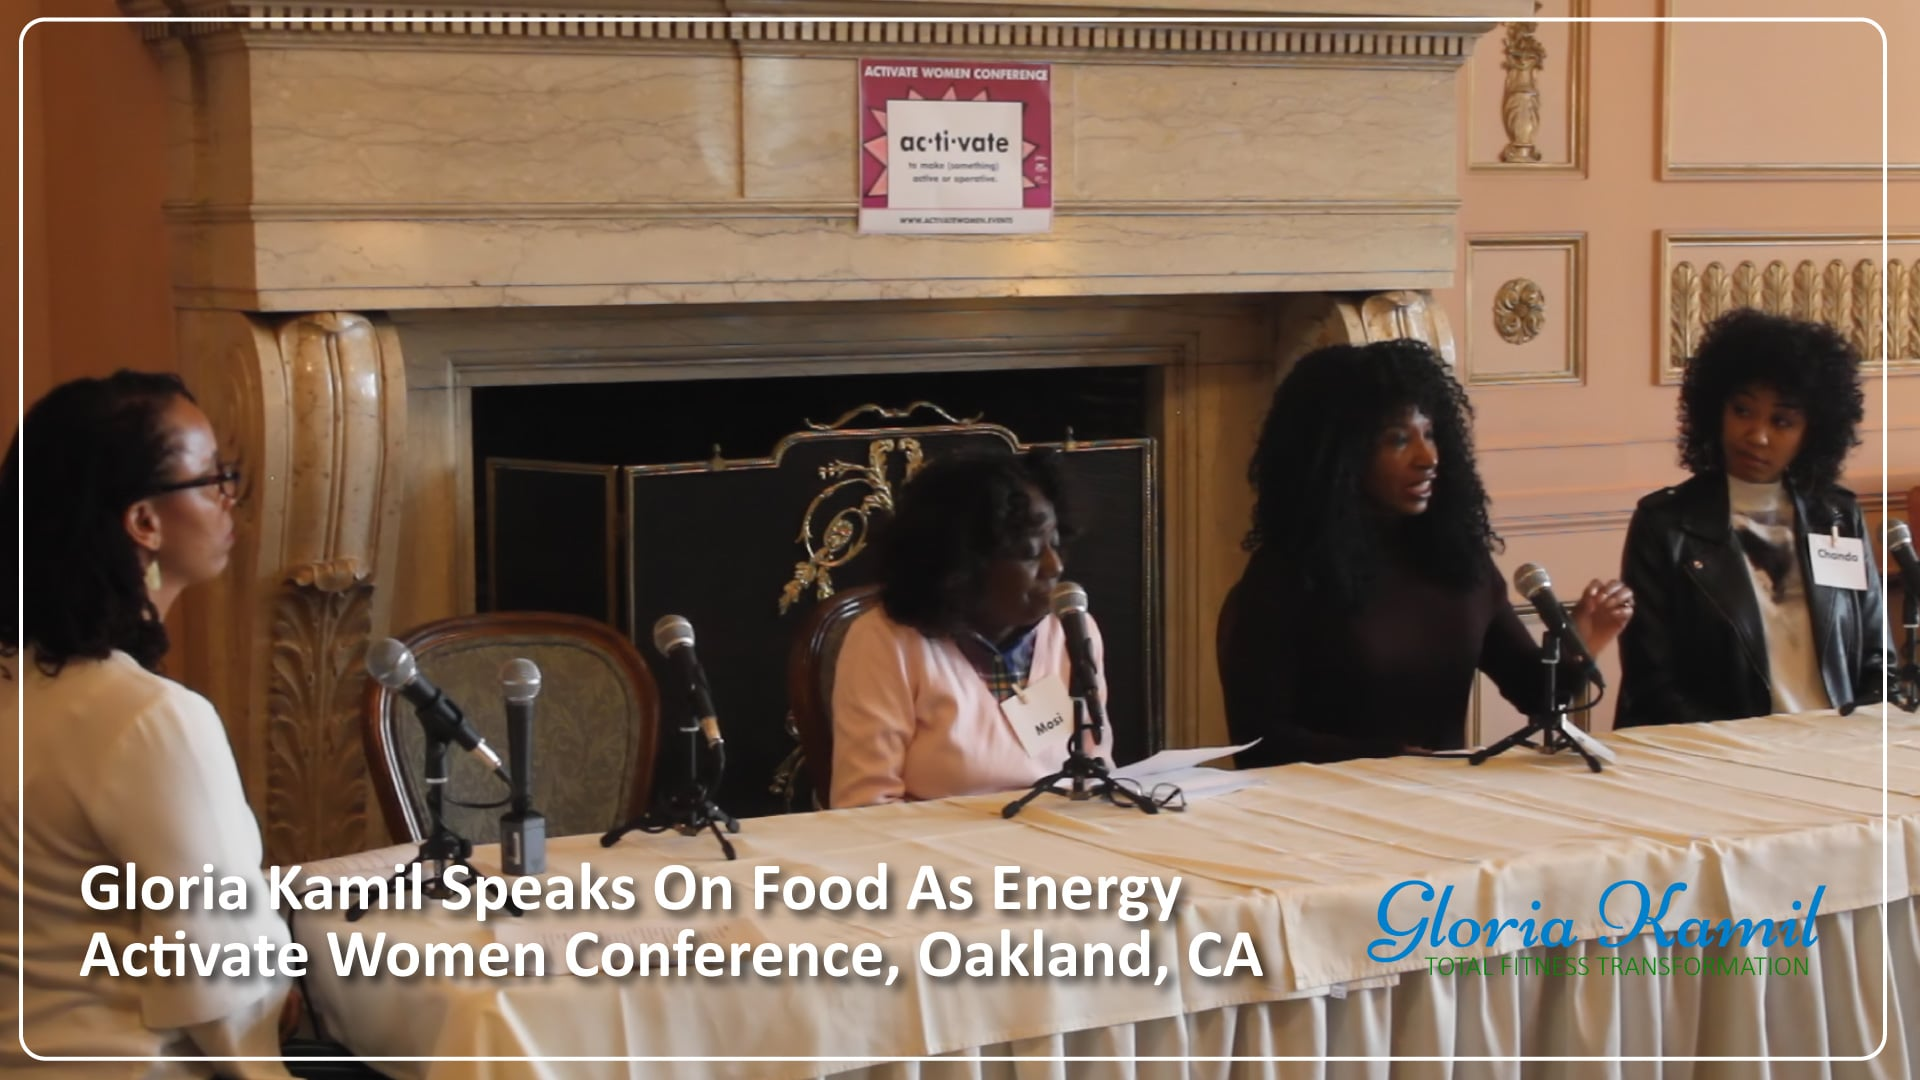 Gloria Kamil Speaks on Health Panel - Activate Women Conference - Oakland, CA